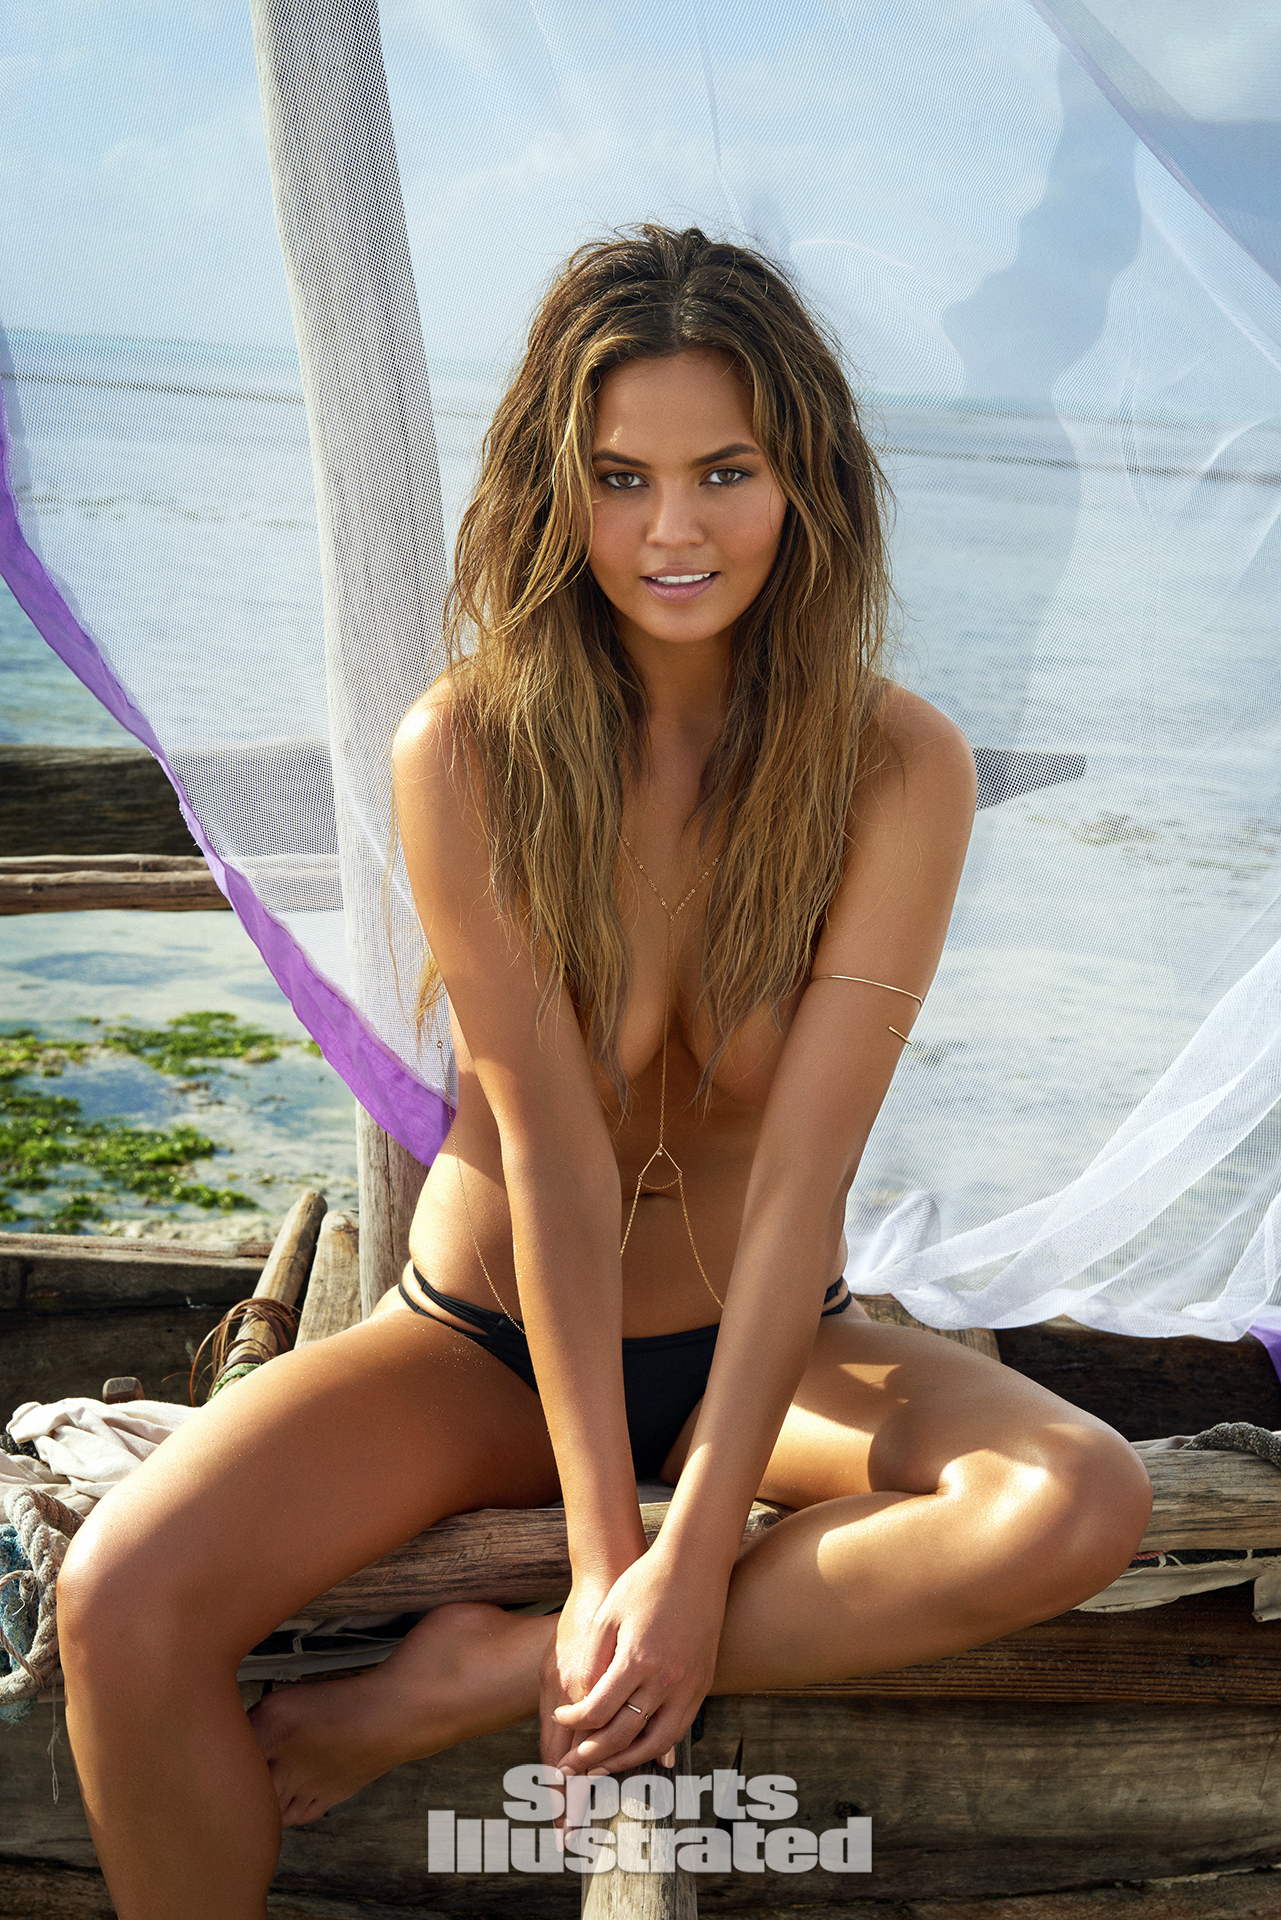 Chrissy Teigen was photographed by Ruven Afanador in Zanzibar. Swimsuit by MIKOH.